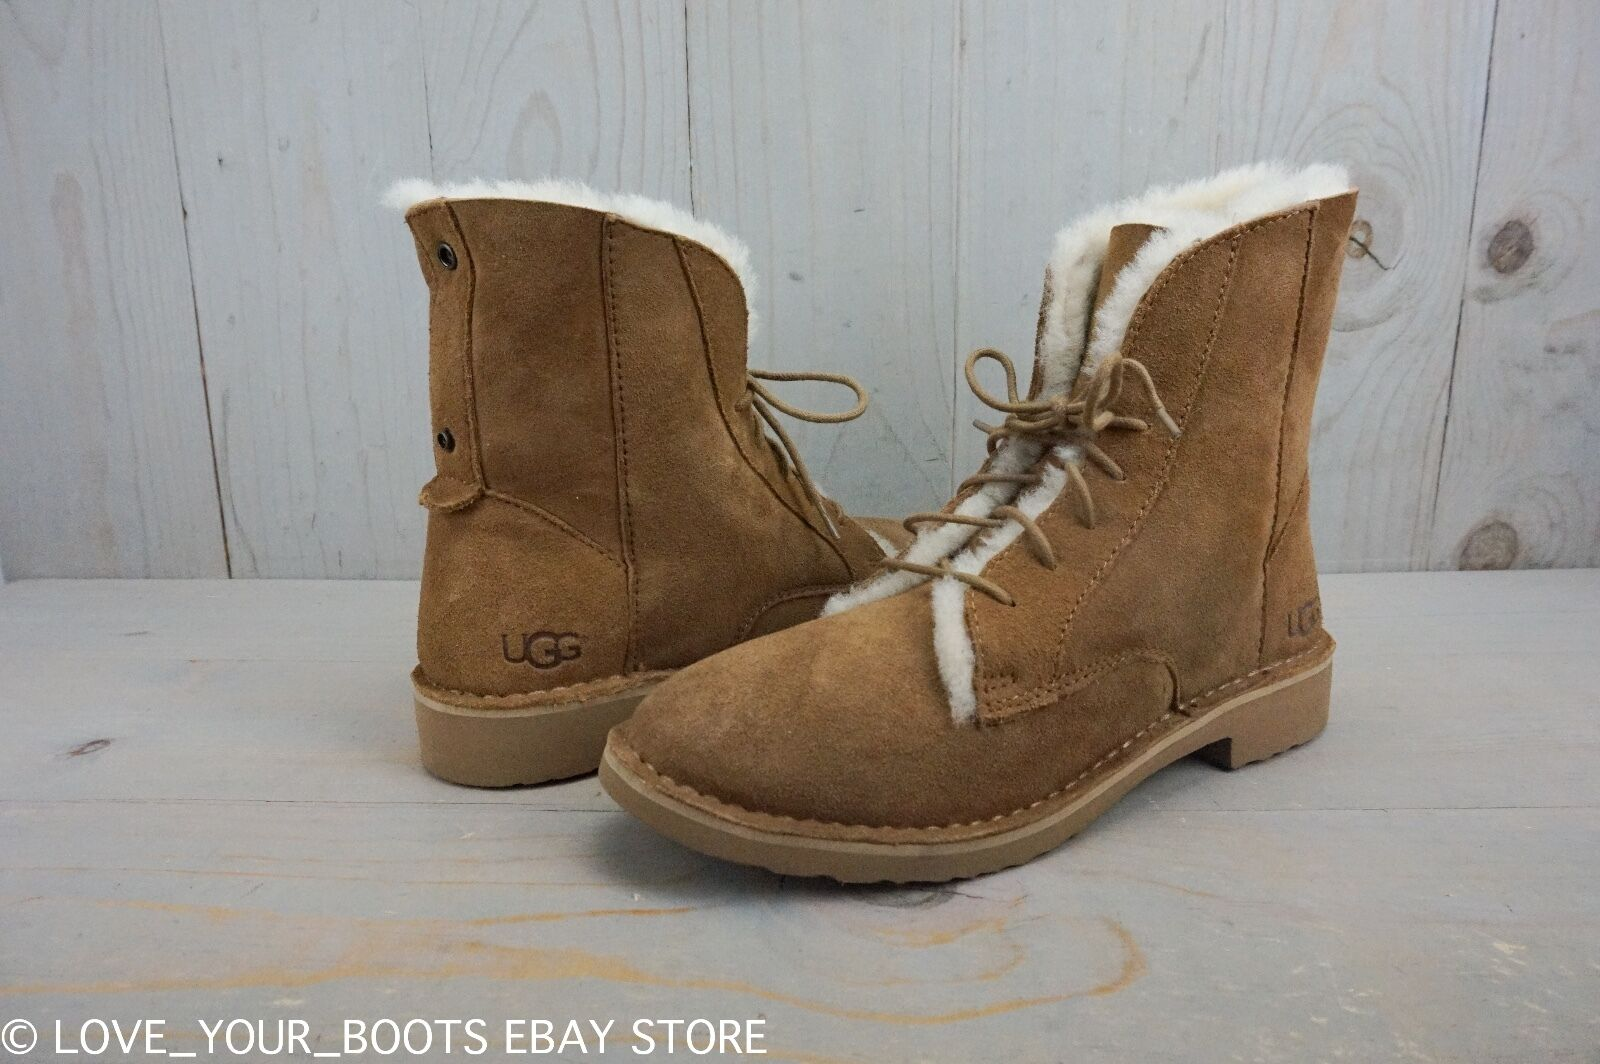 UGG QUINCY CHESTNUT SUEDE LACE UP FOLDABLE CUFF COMBAT BOOTS KVINNOR US 8.5 NEW